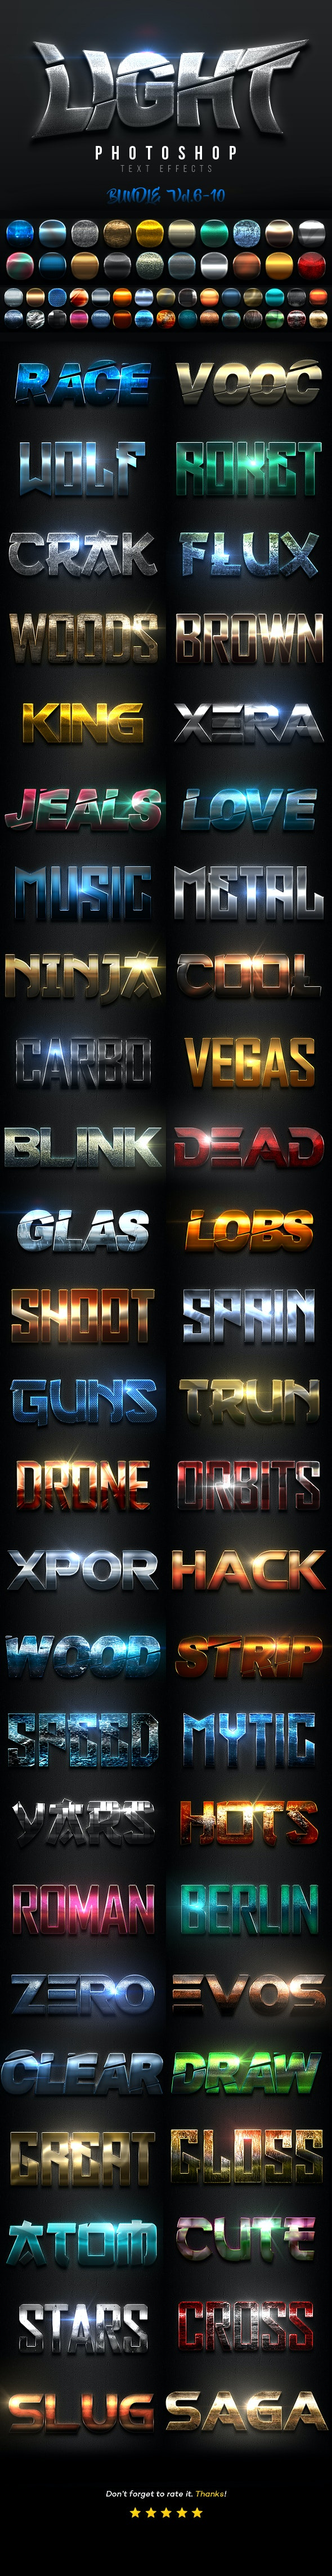 Light Text Effects Bundle II - Text Effects Actions